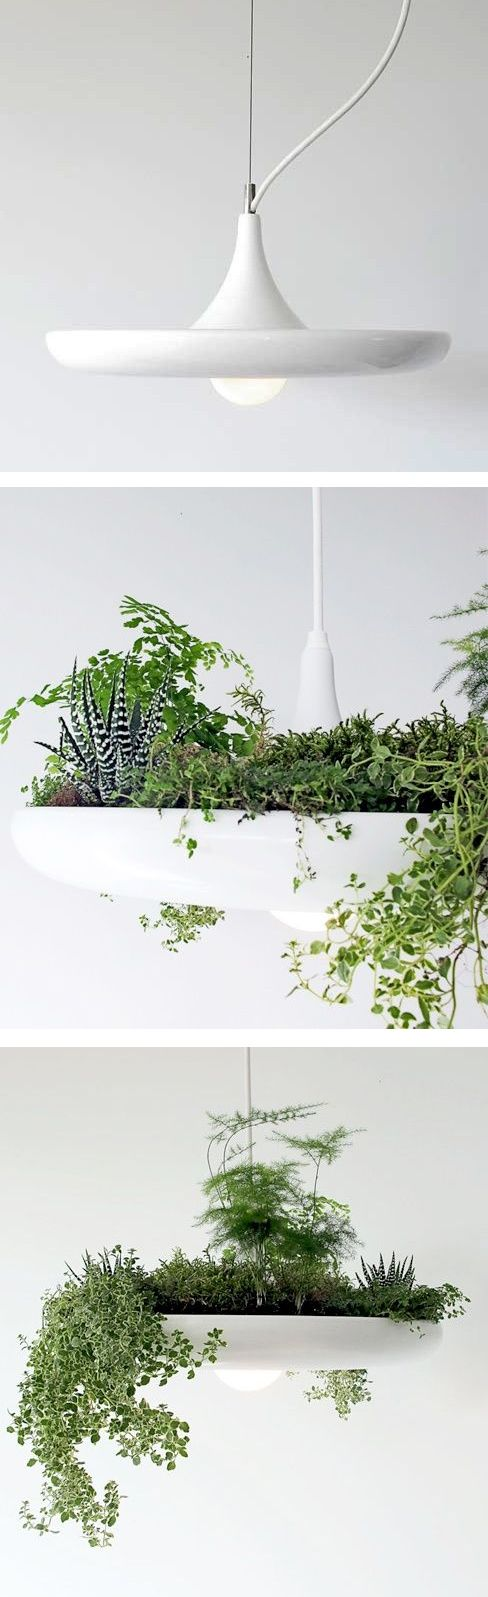 Babylon Light Fixture + Planter // absolutely epic! I want this in my house, now! #industrialdesign #productdesign #lightingdesign